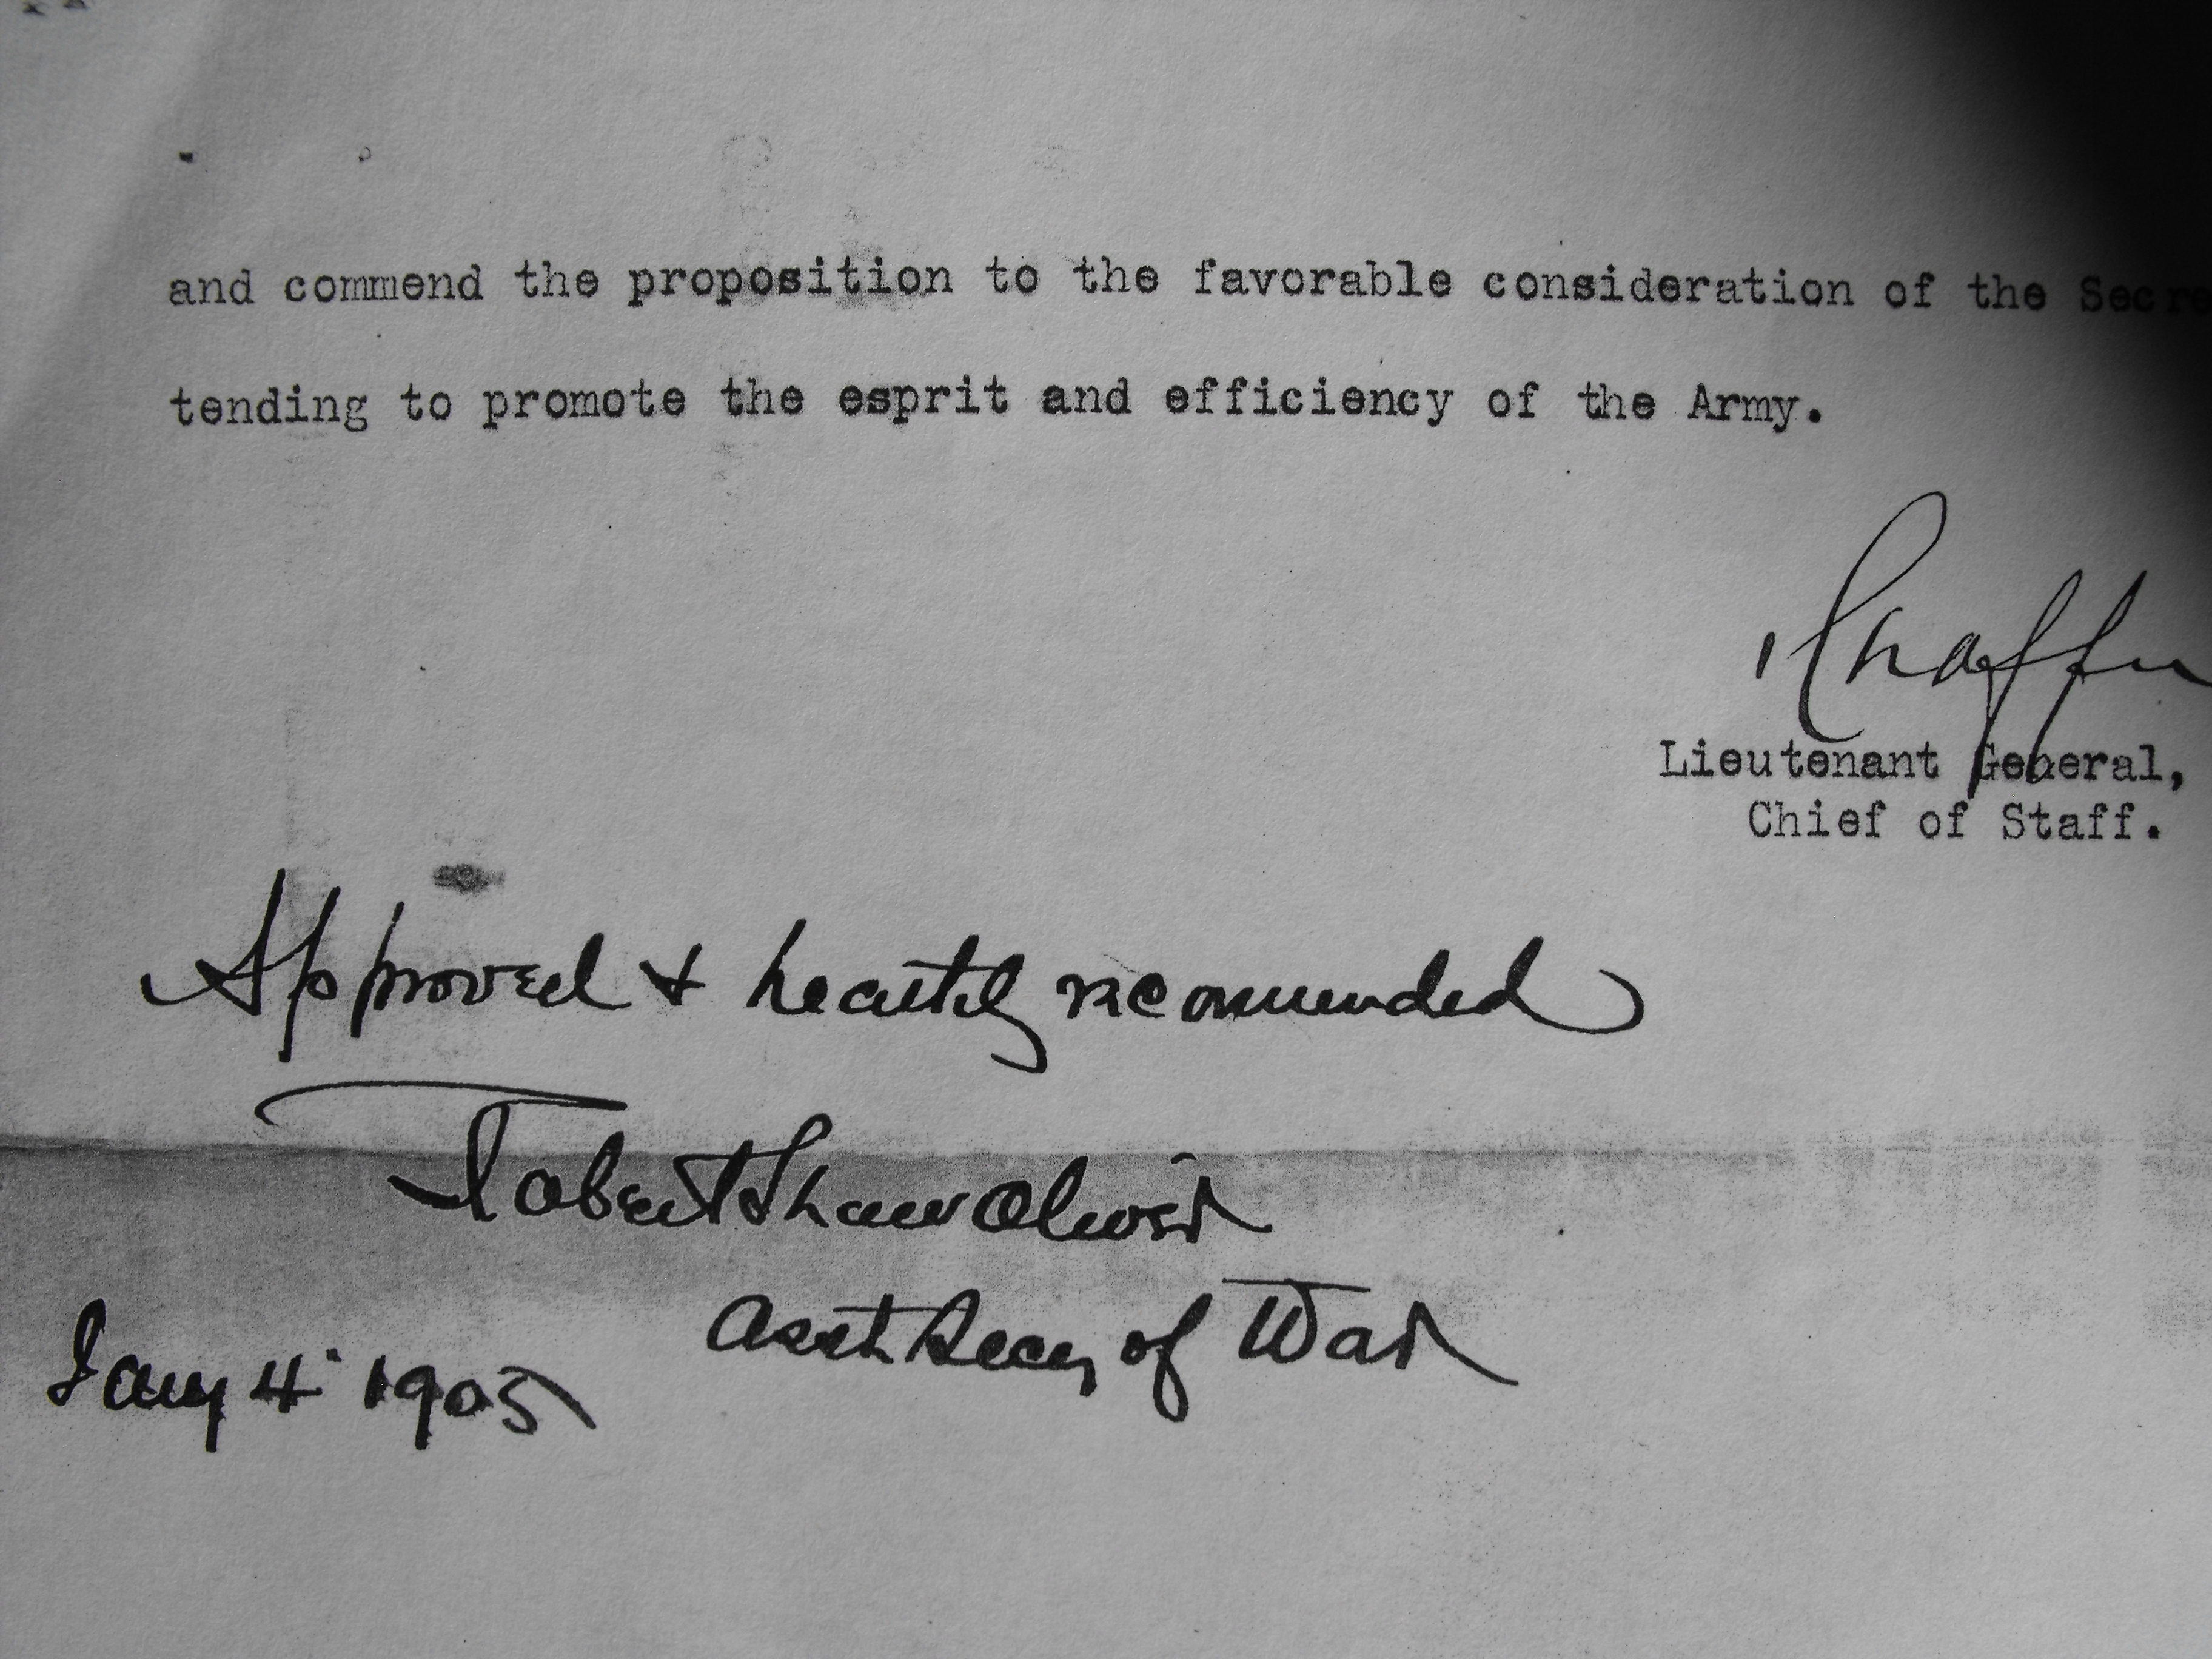 On January 4th, 1905, the Assistant Secretary of War Approves the Plan